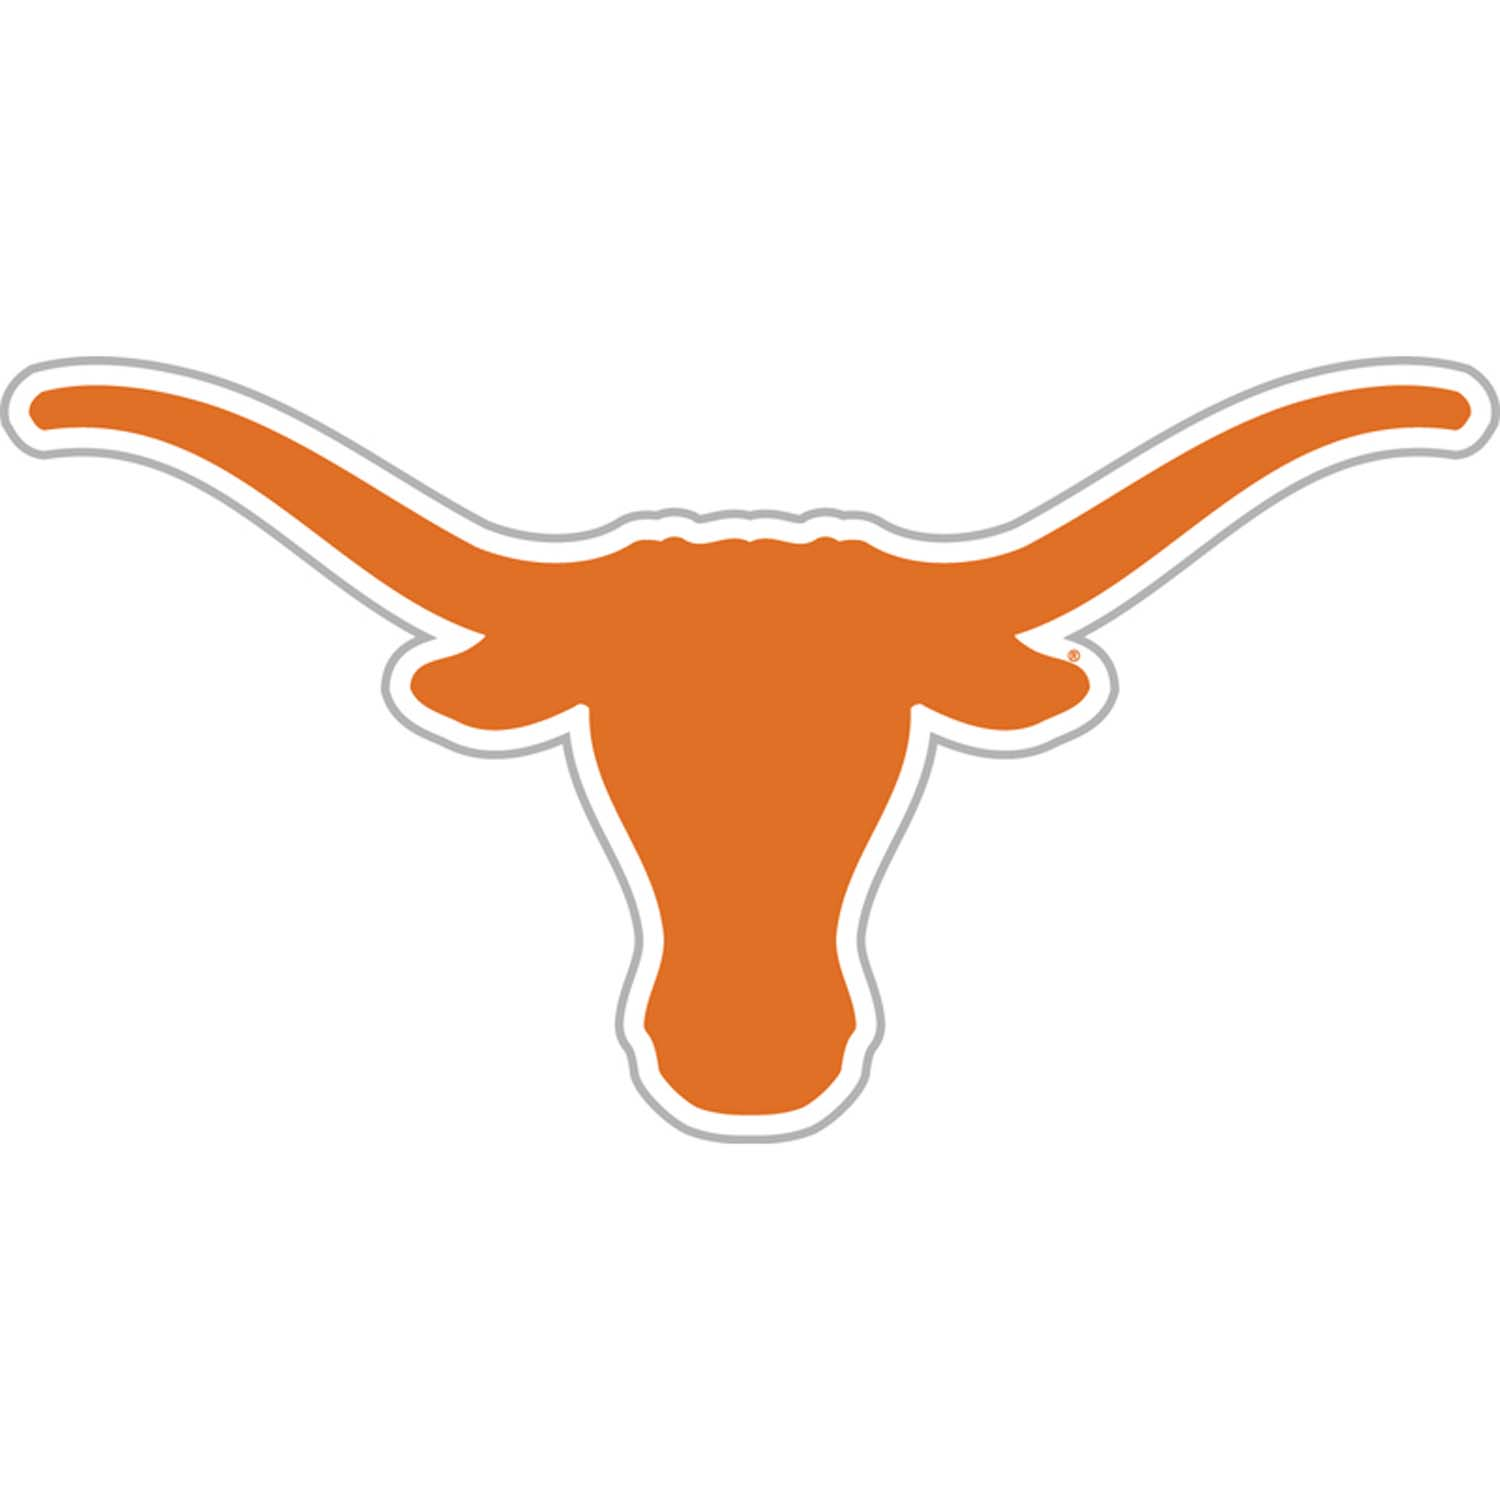 Texas Longhorn Logos | Find Logos At FindThatLogo pluspng.com | The Search - Longhorn HD PNG